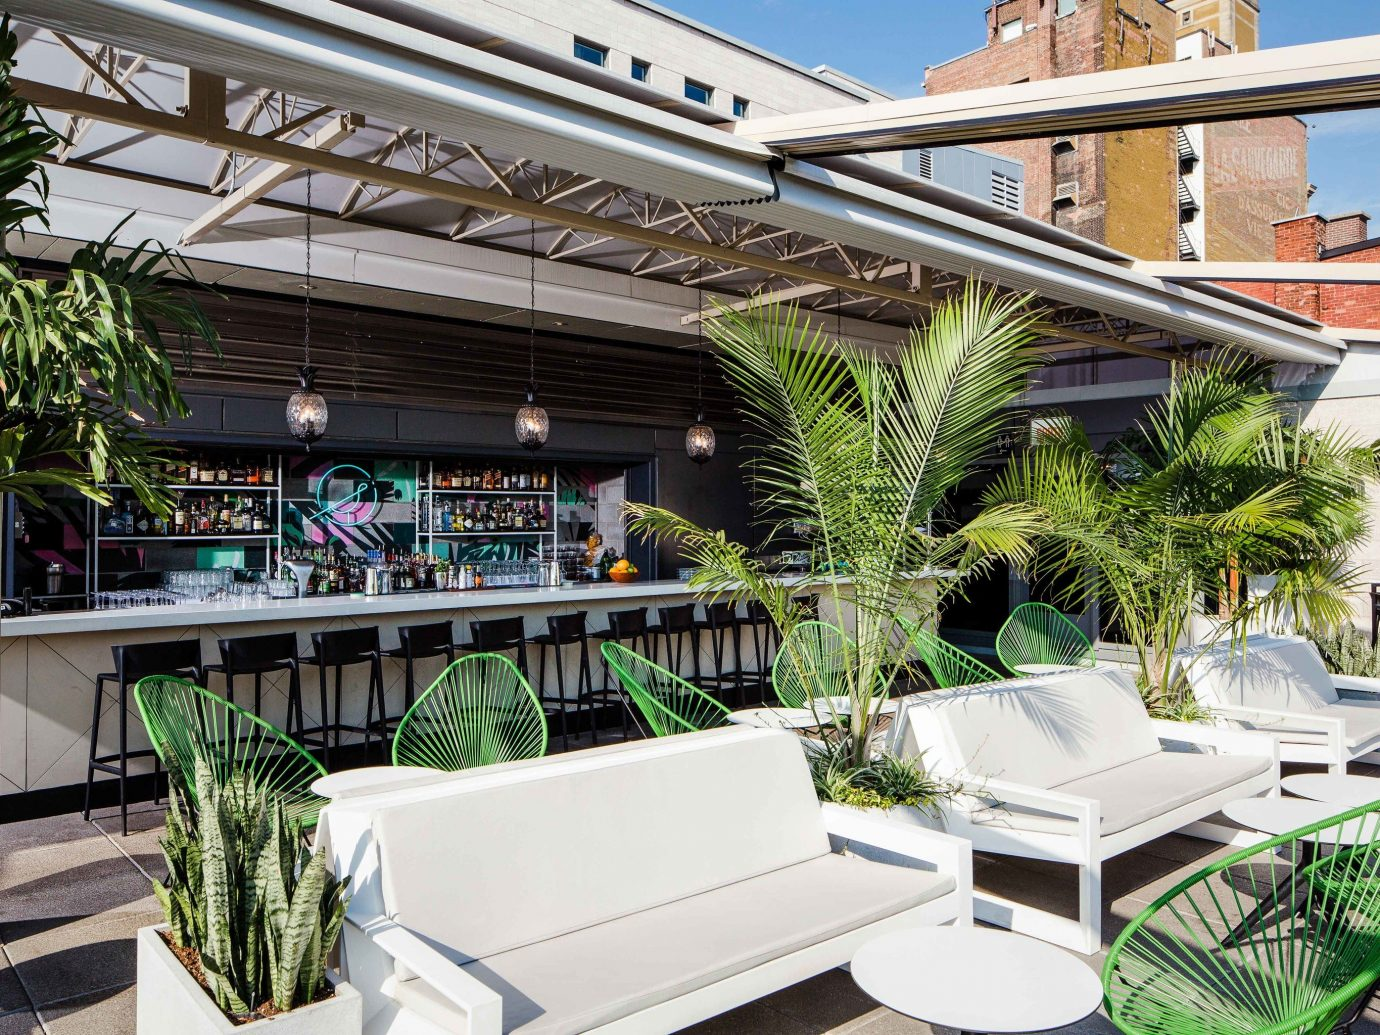 Canada Hotels Montreal Trip Ideas property real estate roof plant arecales palm tree Resort apartment Balcony outdoor structure Patio tree condominium